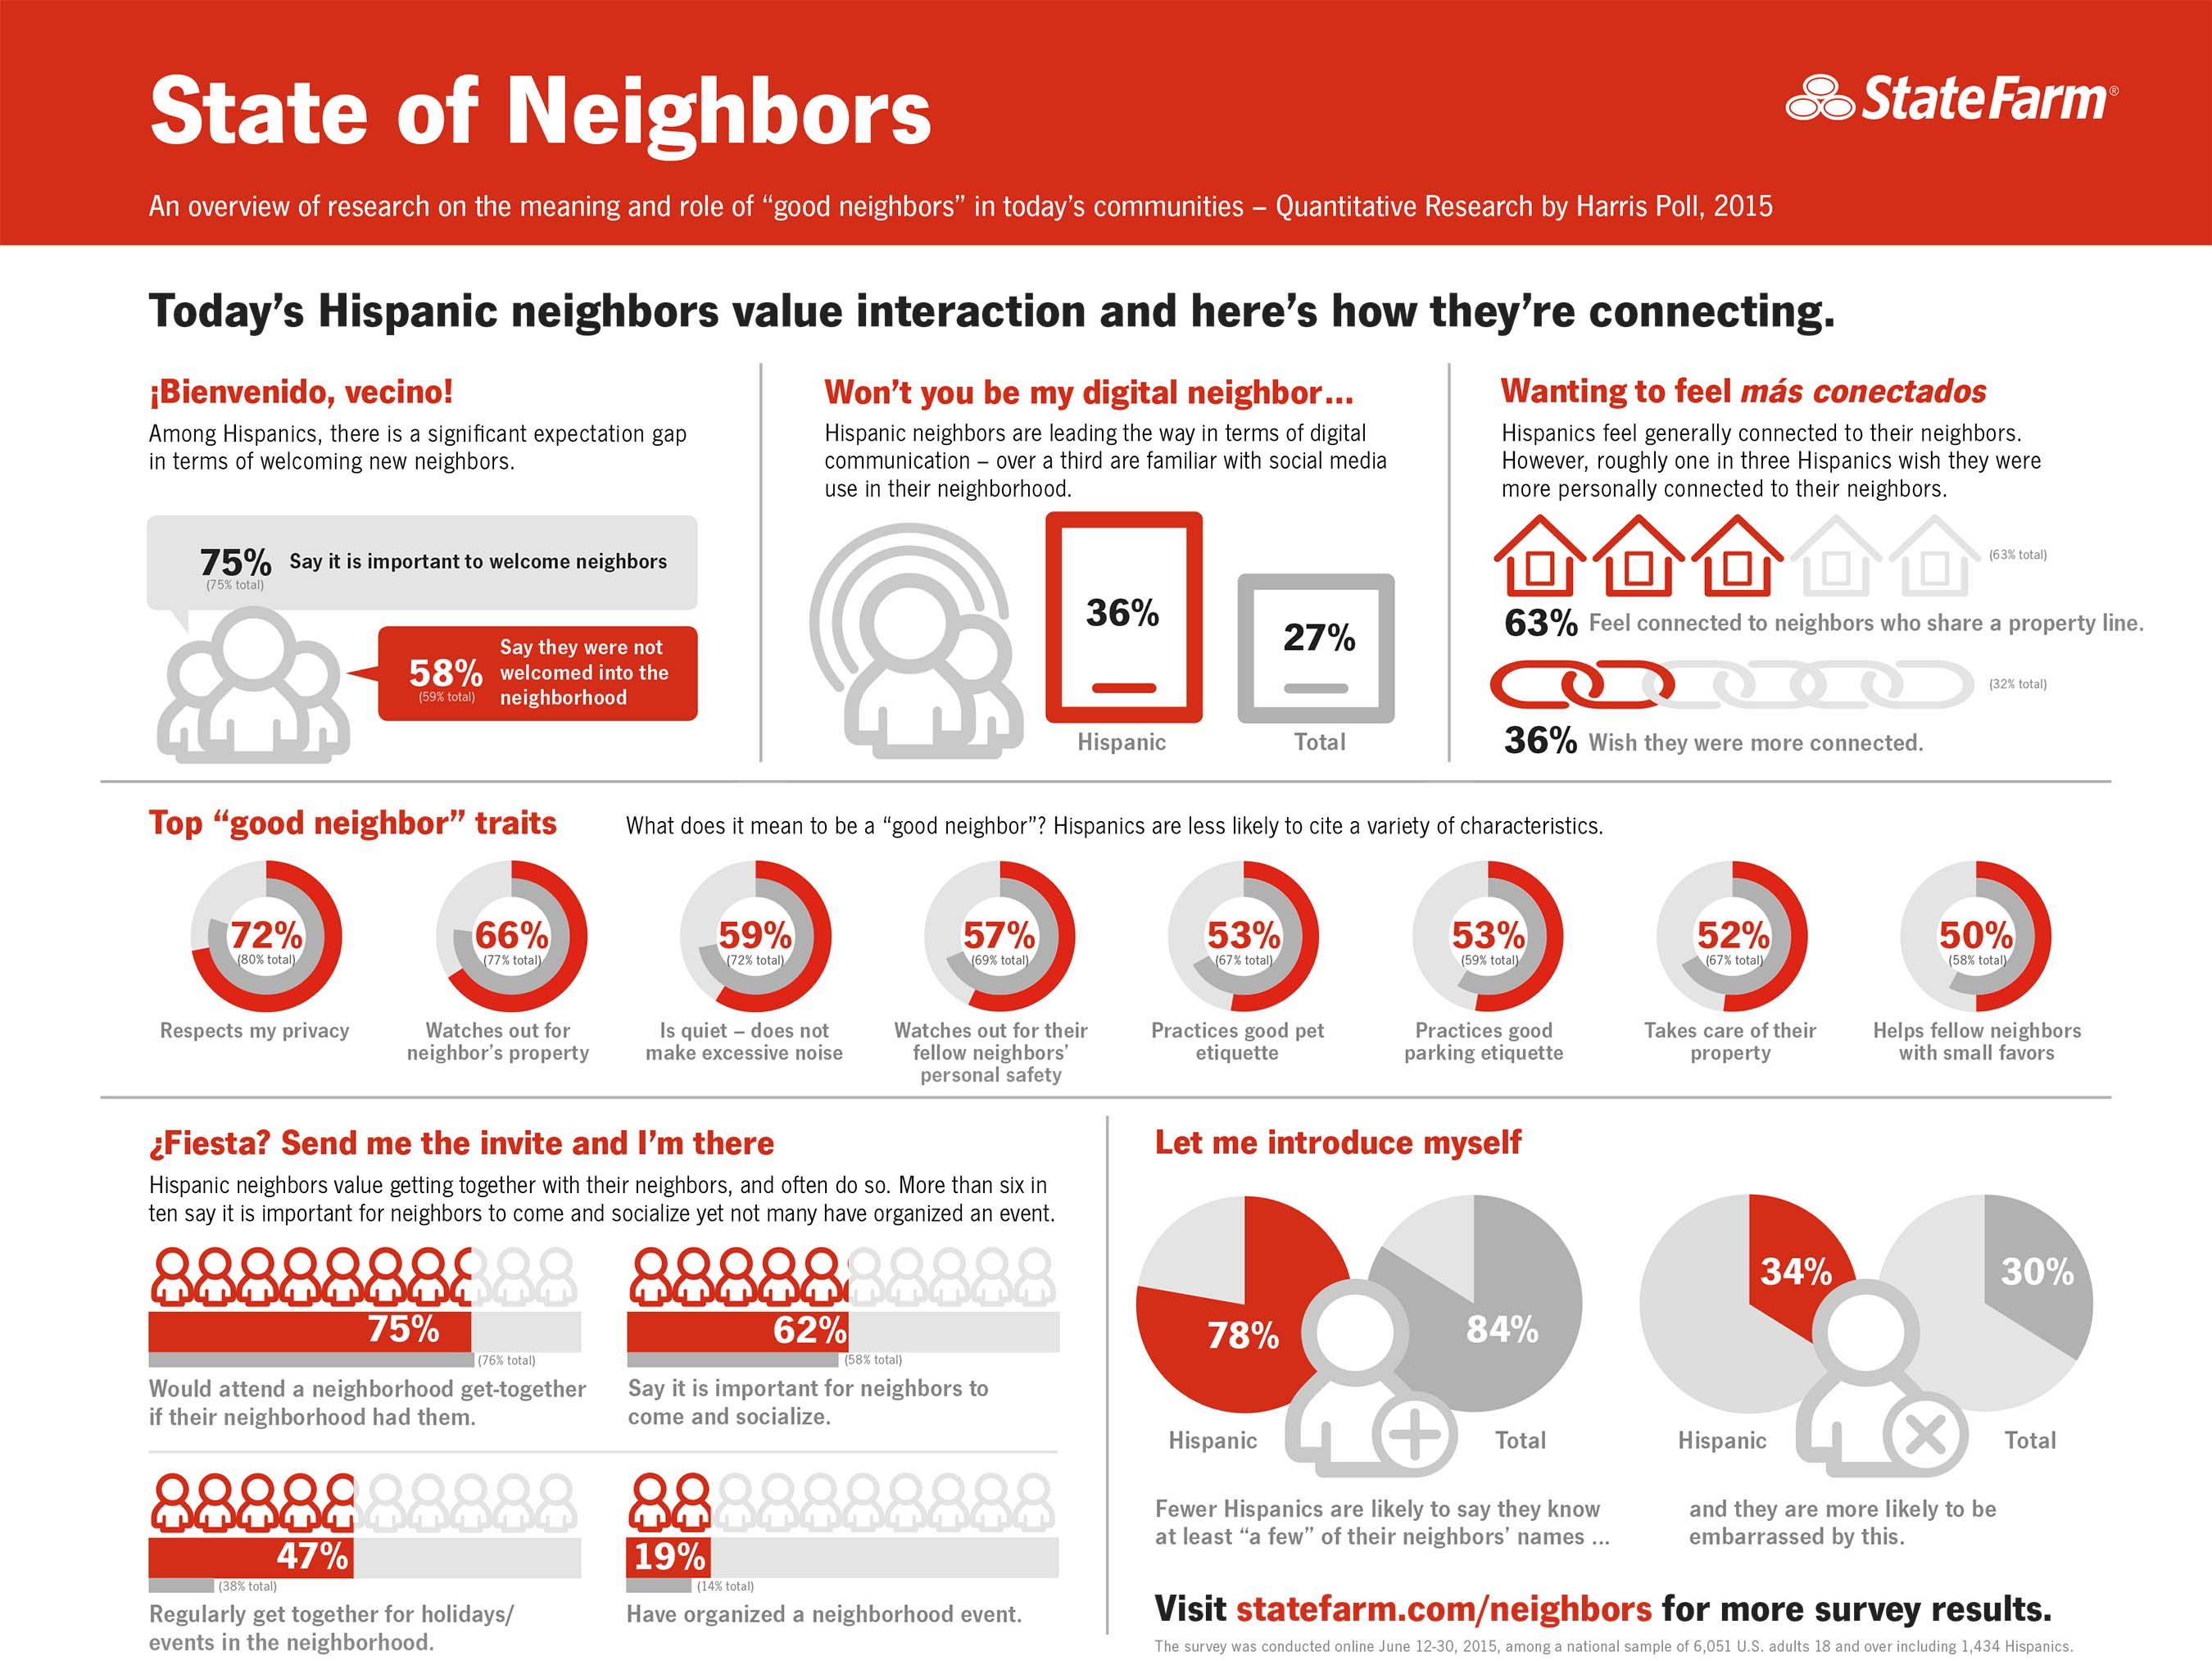 Today's Hispanic neighbors value interaction and they're connecting in a variety of ways, but mostly want to be more connected.